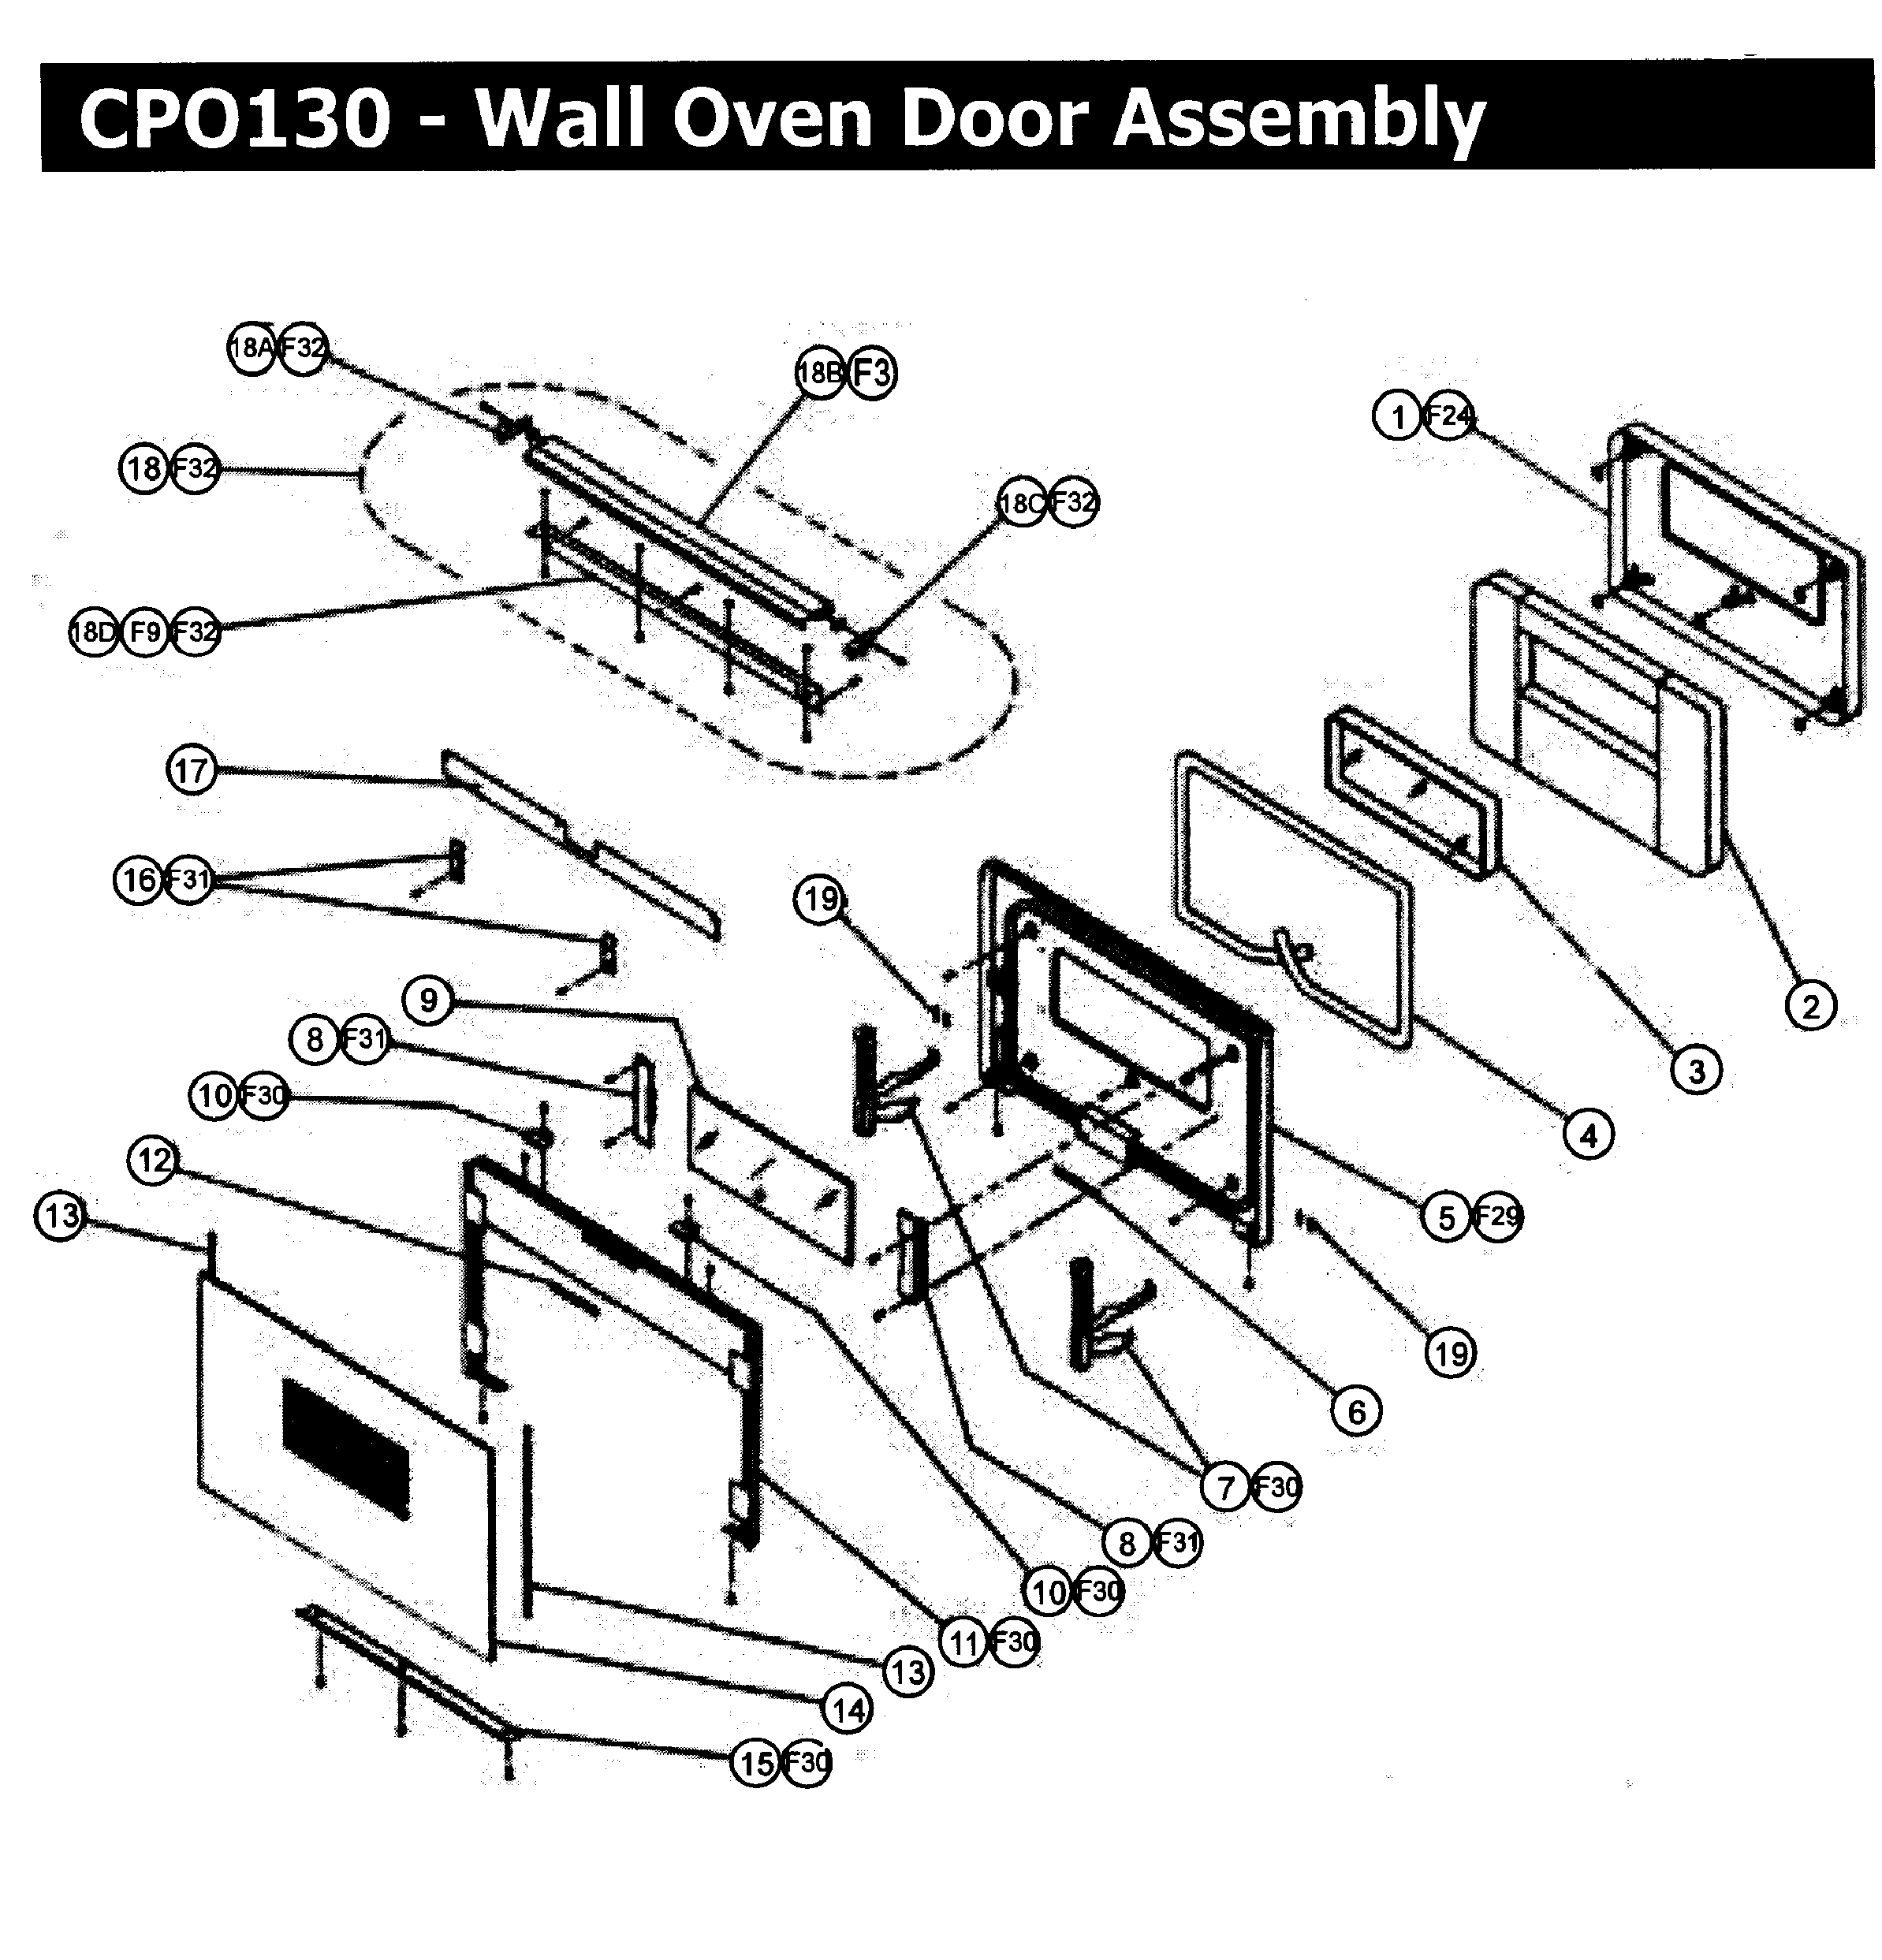 Dacor Wall Oven Wiring Diagram Opinions About Electric Cpo130 Timer Stove Clocks And Appliance Timers Cooktop Parts